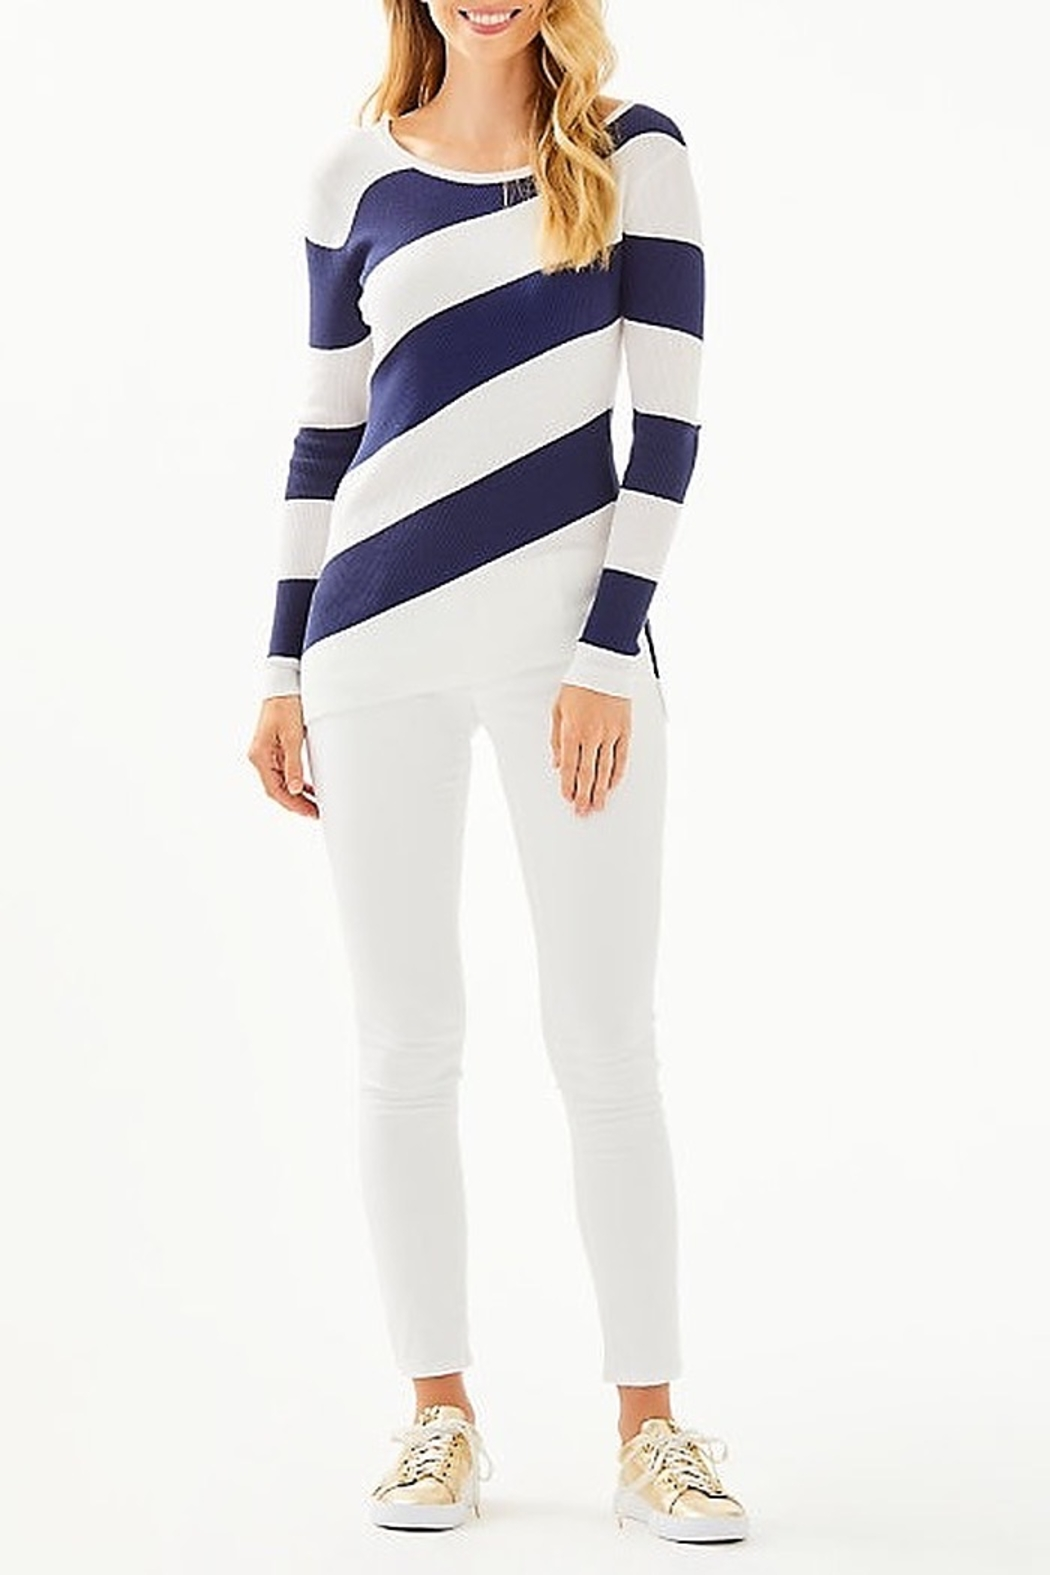 Lilly Pulitzer Cadee Striped Sweater - Side Cropped Image